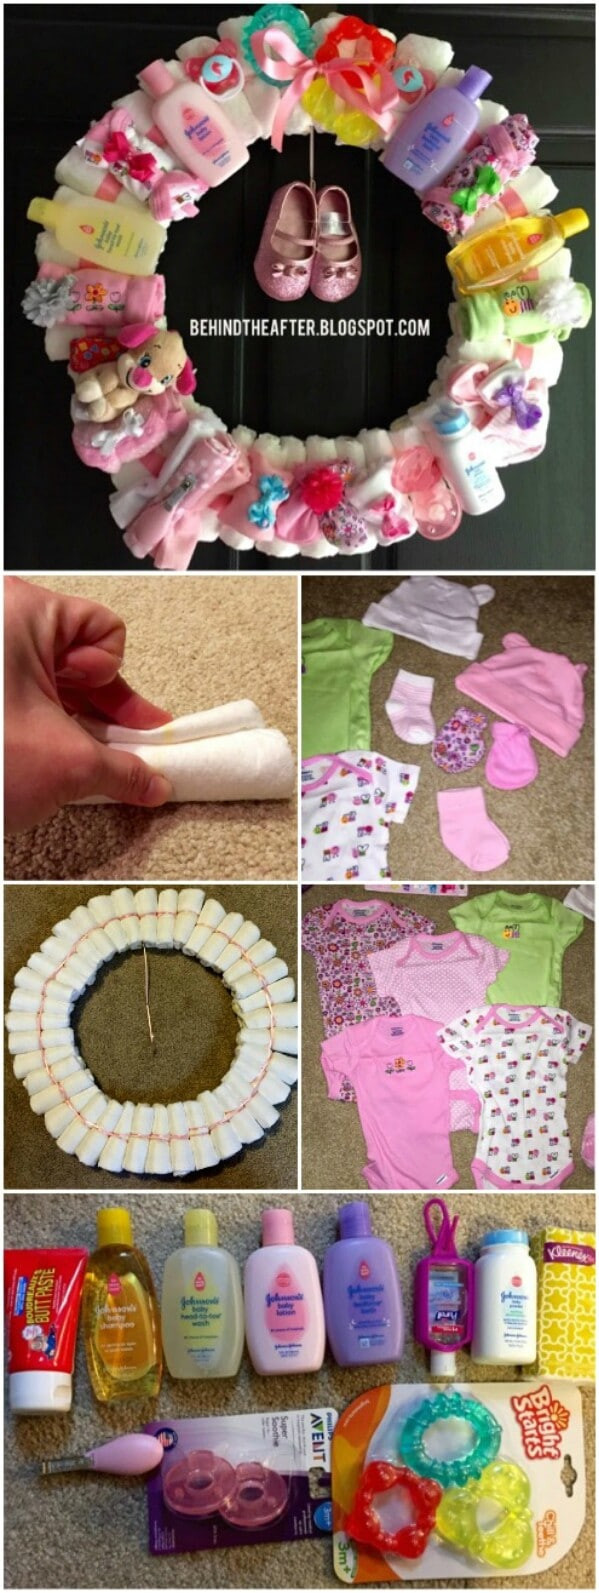 DIY Baby Girl Gifts  25 Enchantingly Adorable Baby Shower Gift Ideas That Will